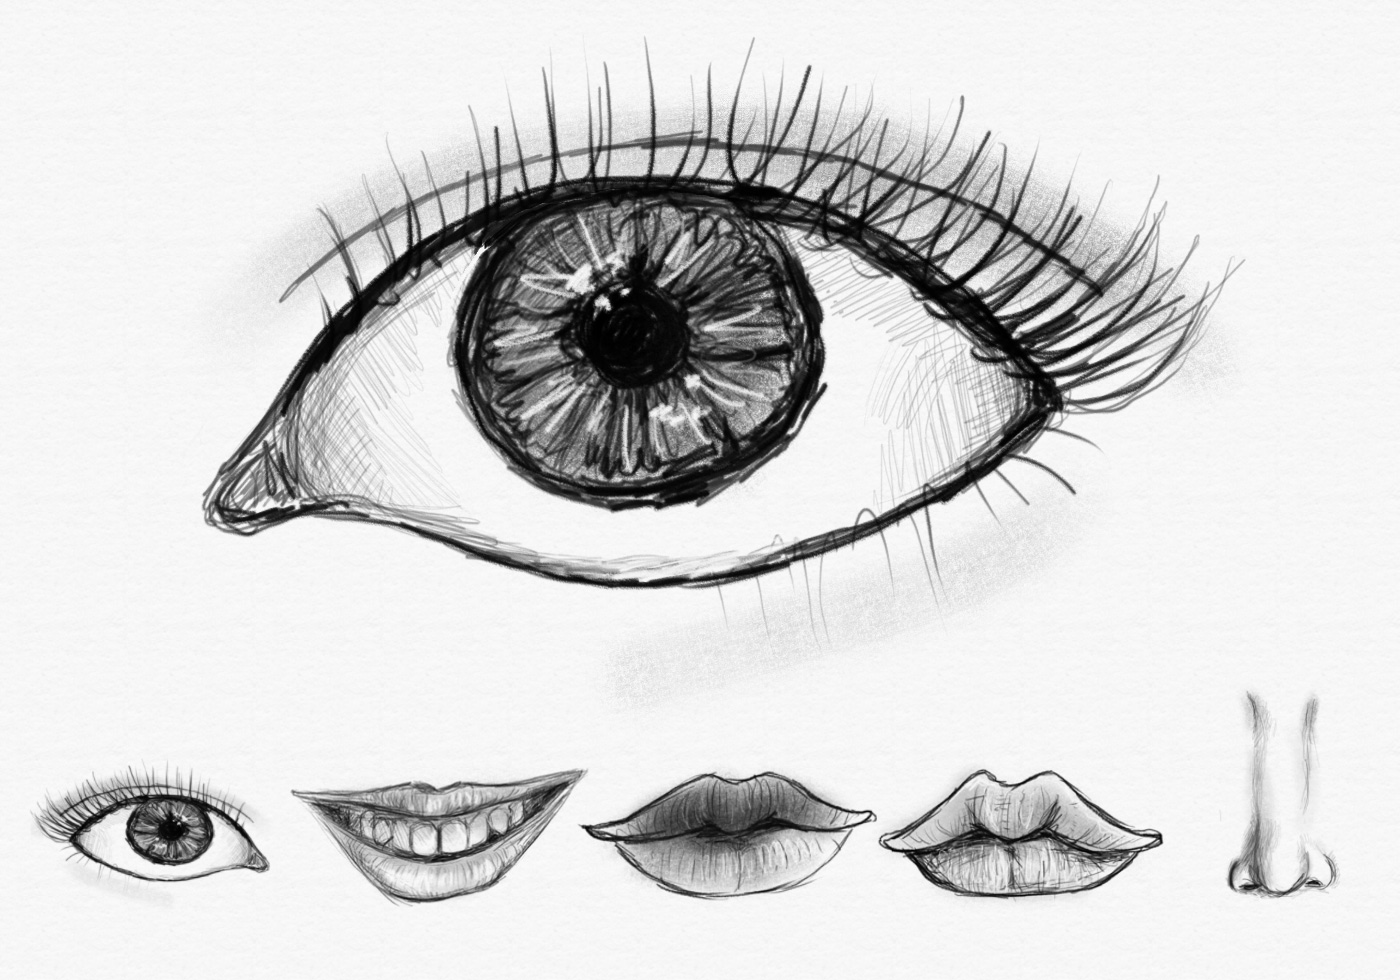 coloring face in photoshop tessart handdrawn eyes mouths and nose brush free in photoshop coloring face